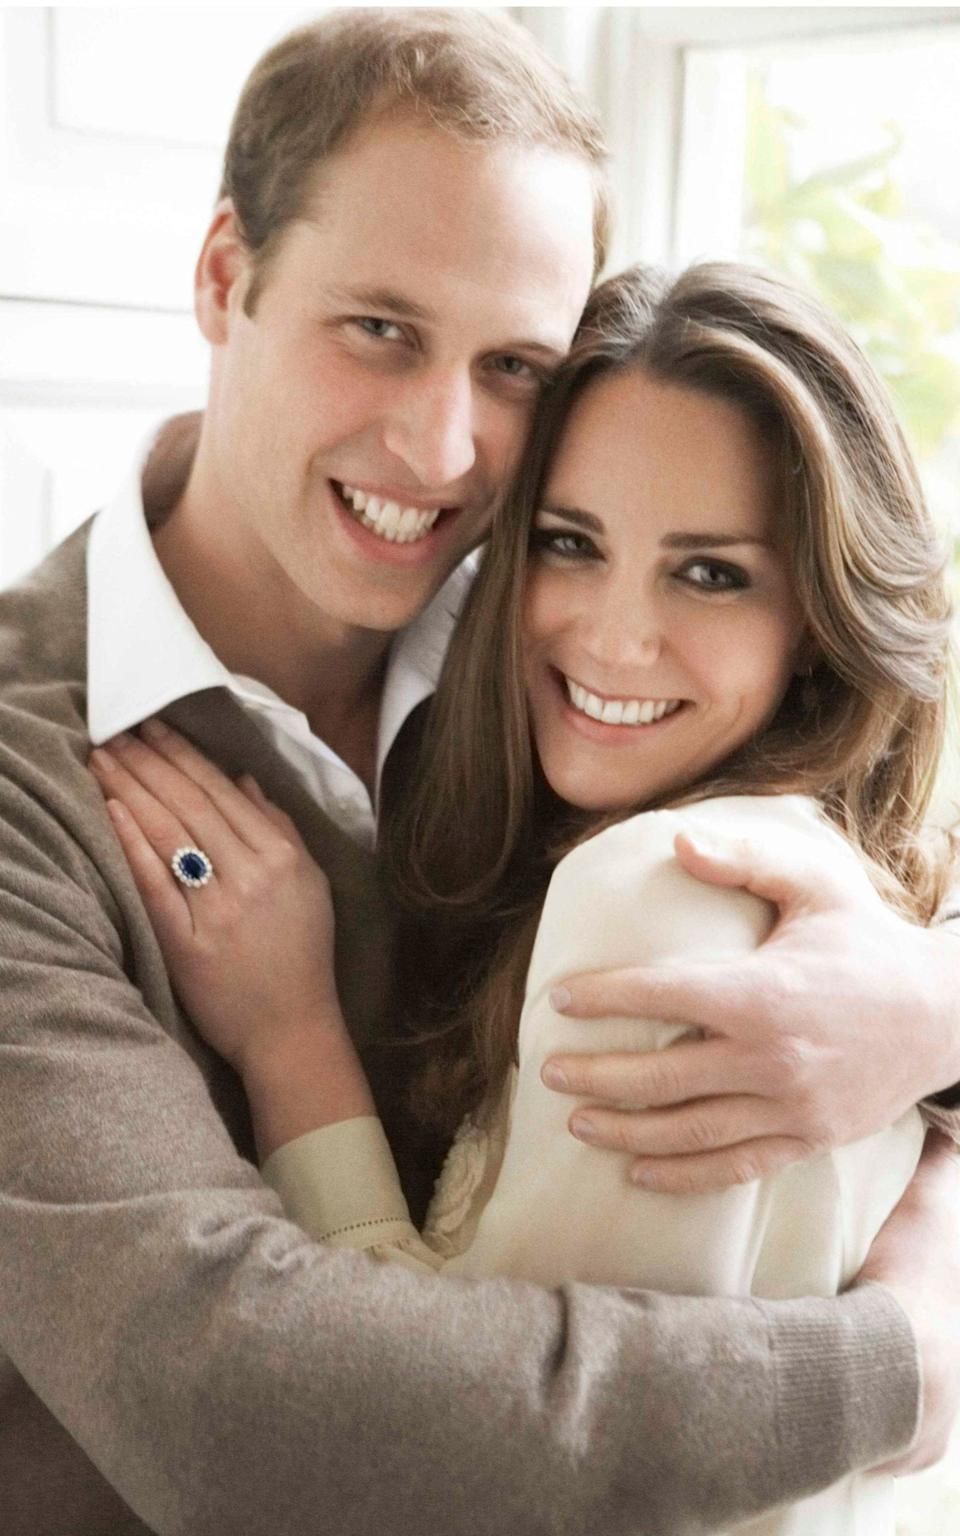 Kate Middleton wearing the sapphire and diamond Garrard ring that previously belonged to Princess Diana, in the official engagement portrait with Prince William - Mario Testino